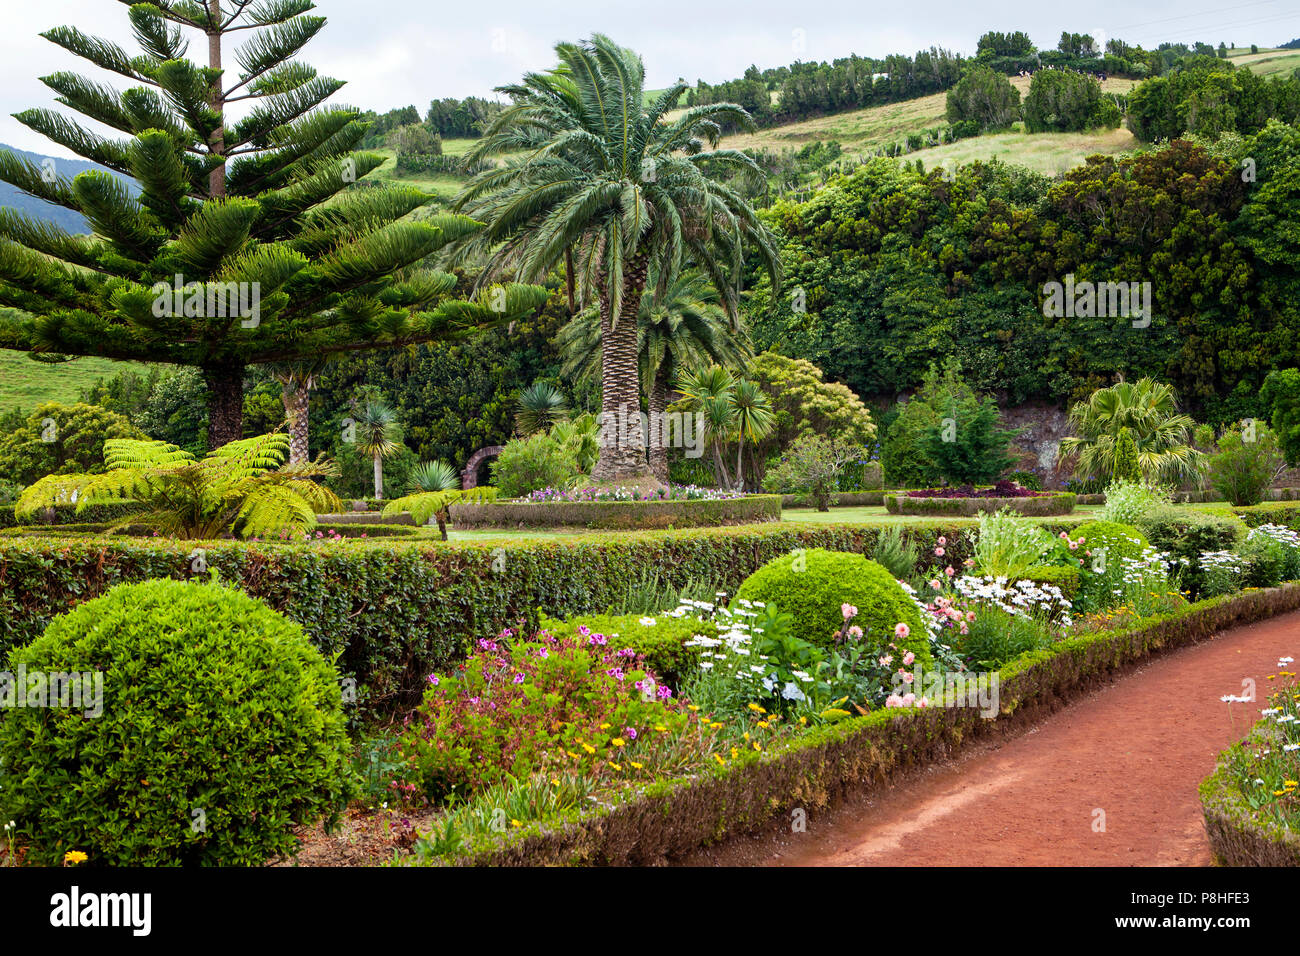 Gardens at viewpoint Ponta do Sossego, Sao Miguel Island, Azores, Portugal - Stock Image